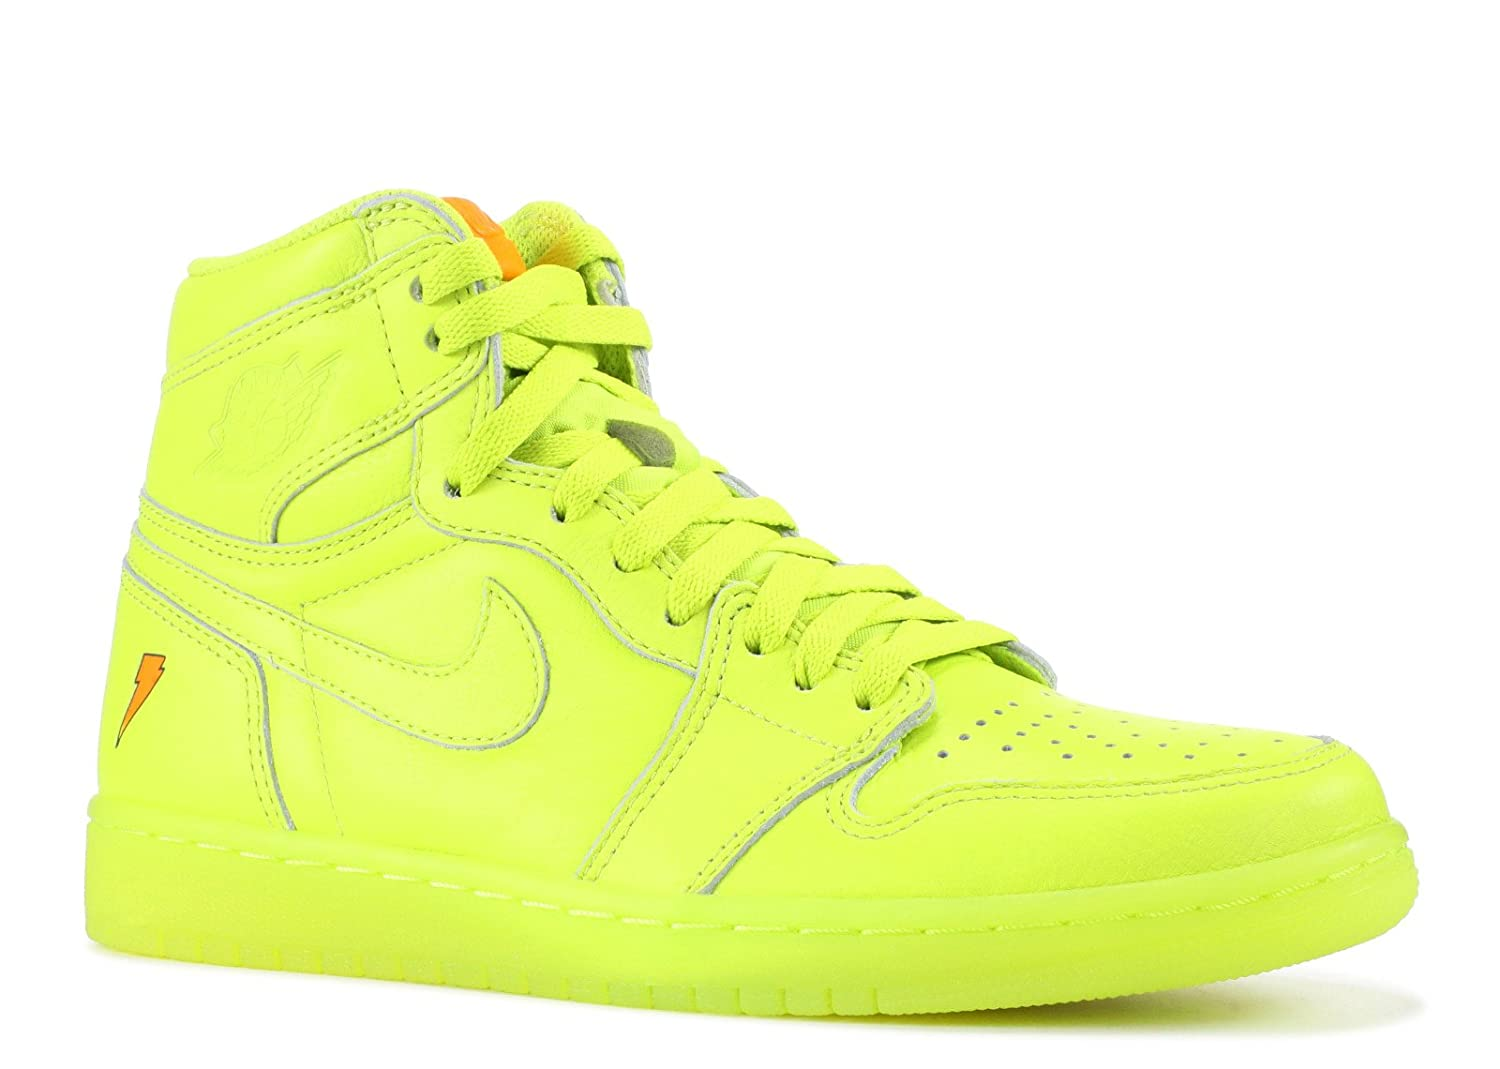 reputable site 1cd16 087aa Amazon.com | AIR Jordan 1 Retro HI OG G8RD 'Gatorade ...